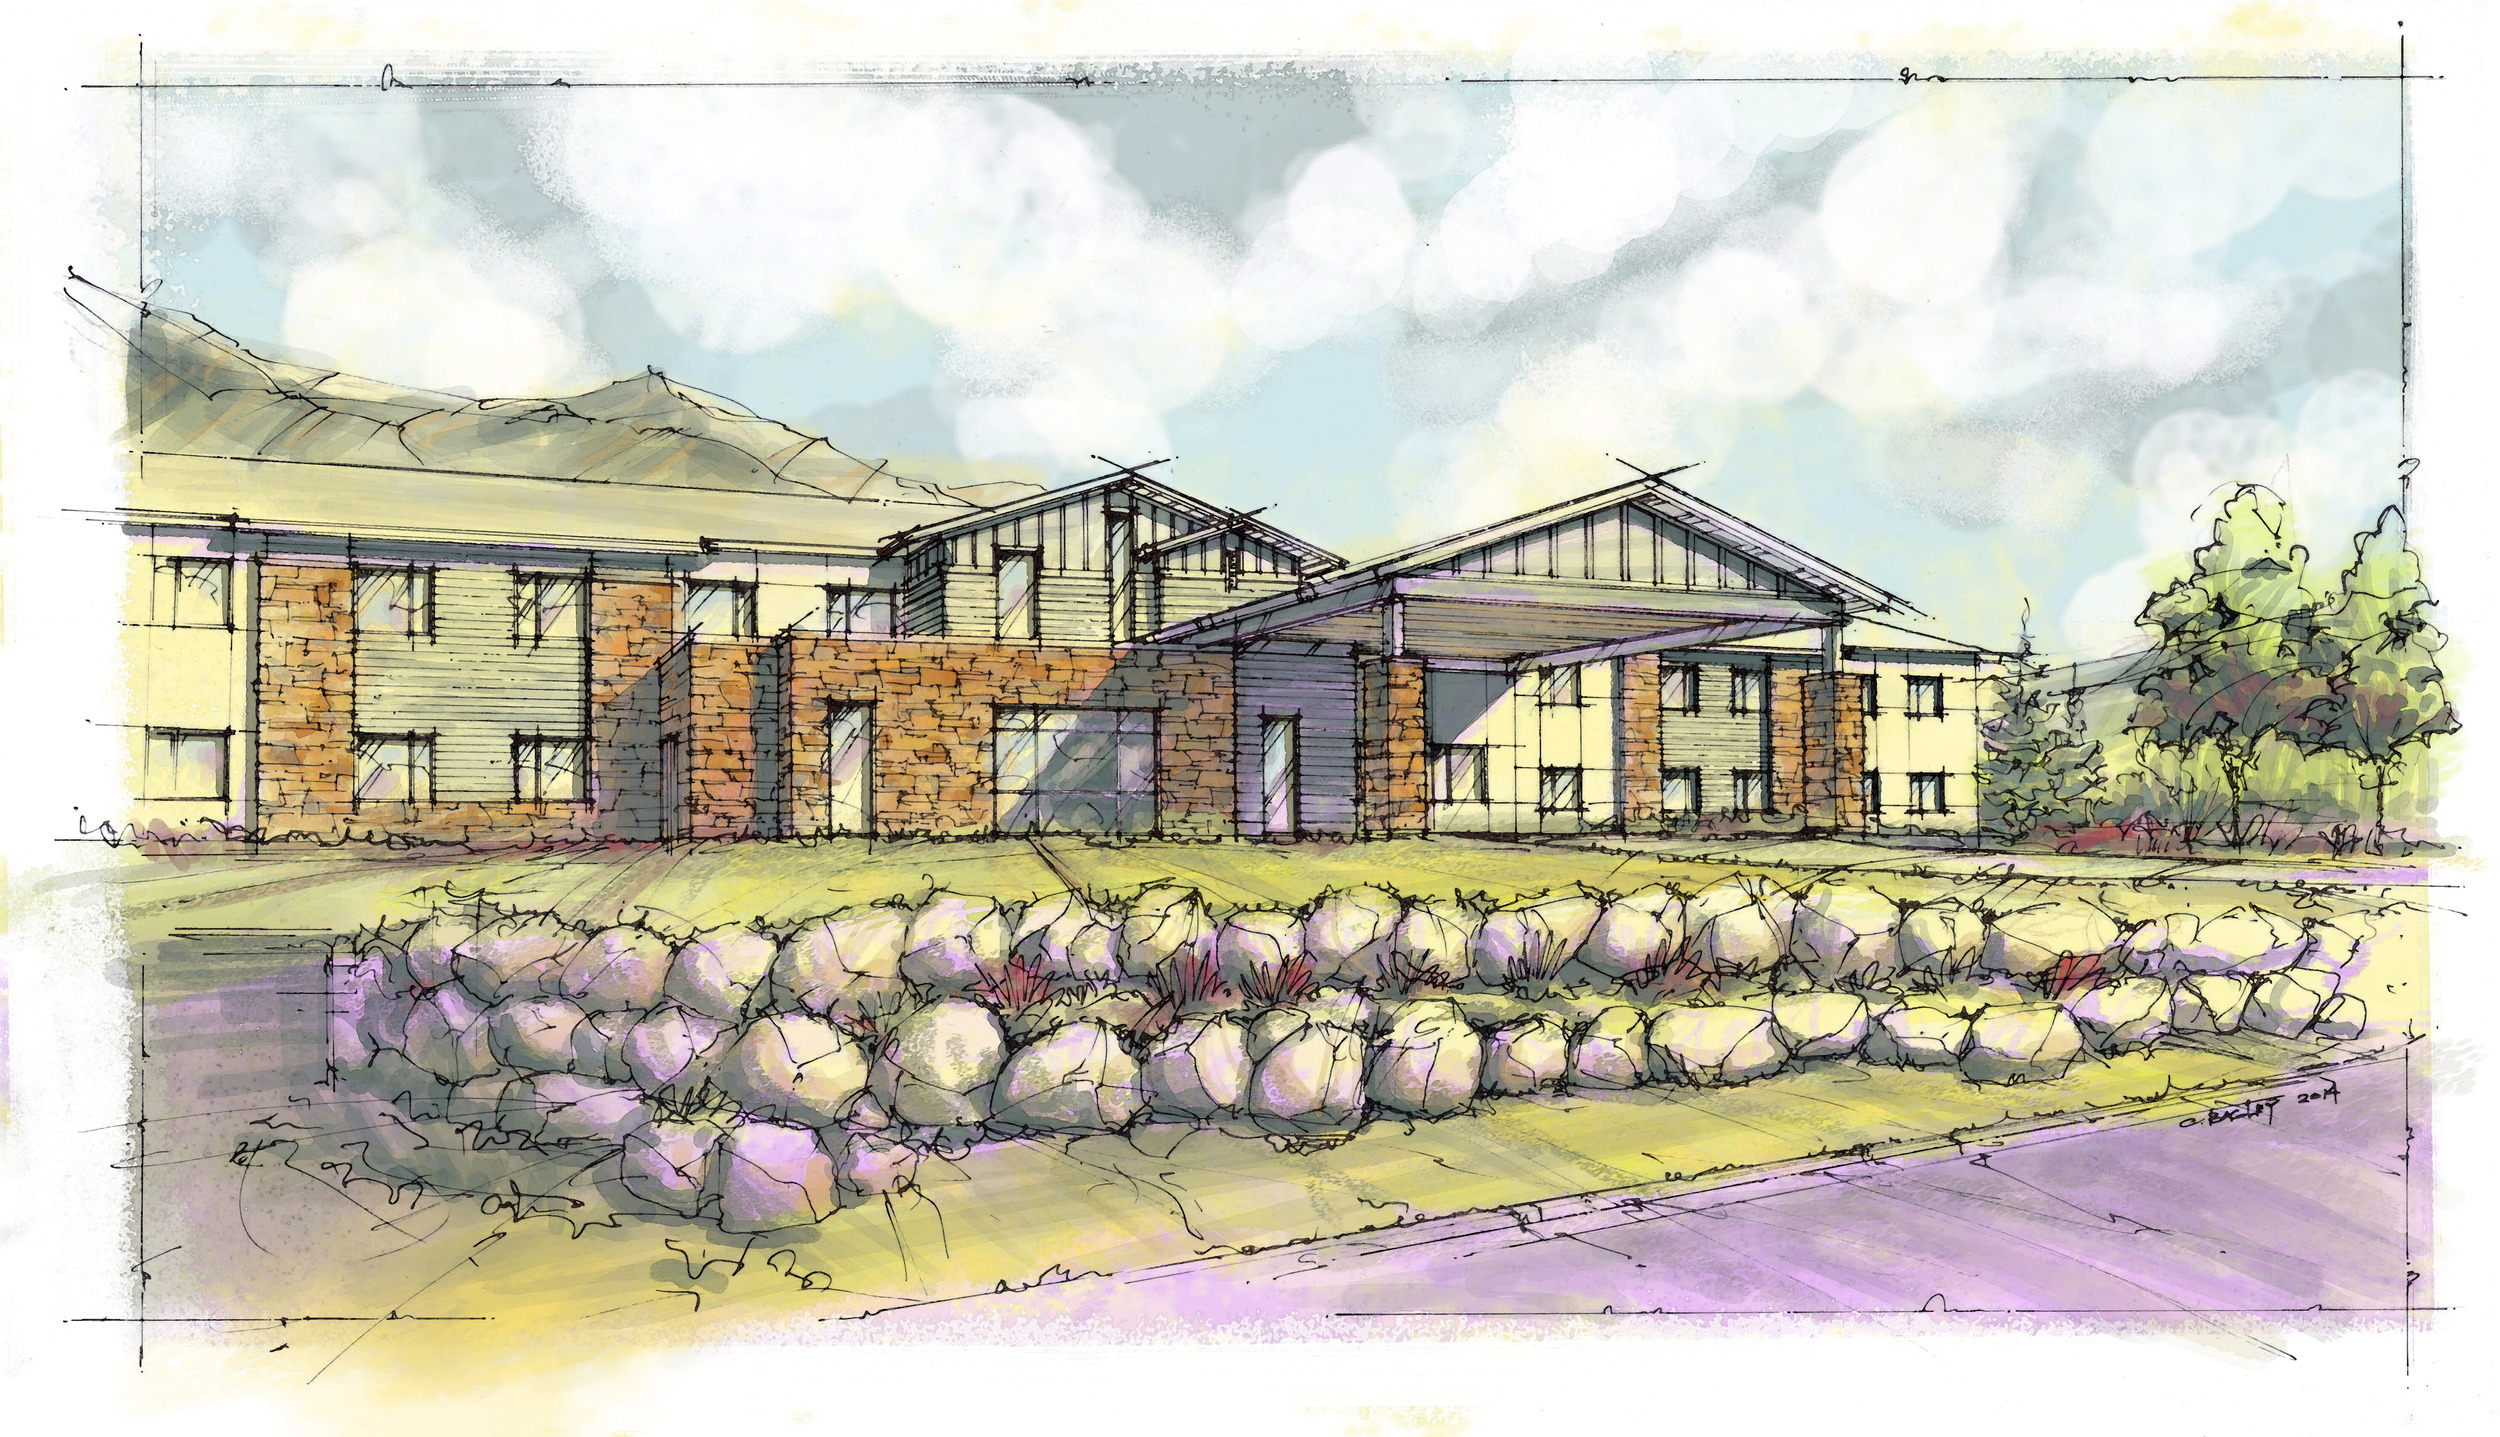 FOREST RIDGE SENIOR LIVING CENTER -  New construction of a 2-story, 49,000 SF senior living center with 80 private rooms. There is an occupied medical center located on the project site in an adjacent building.